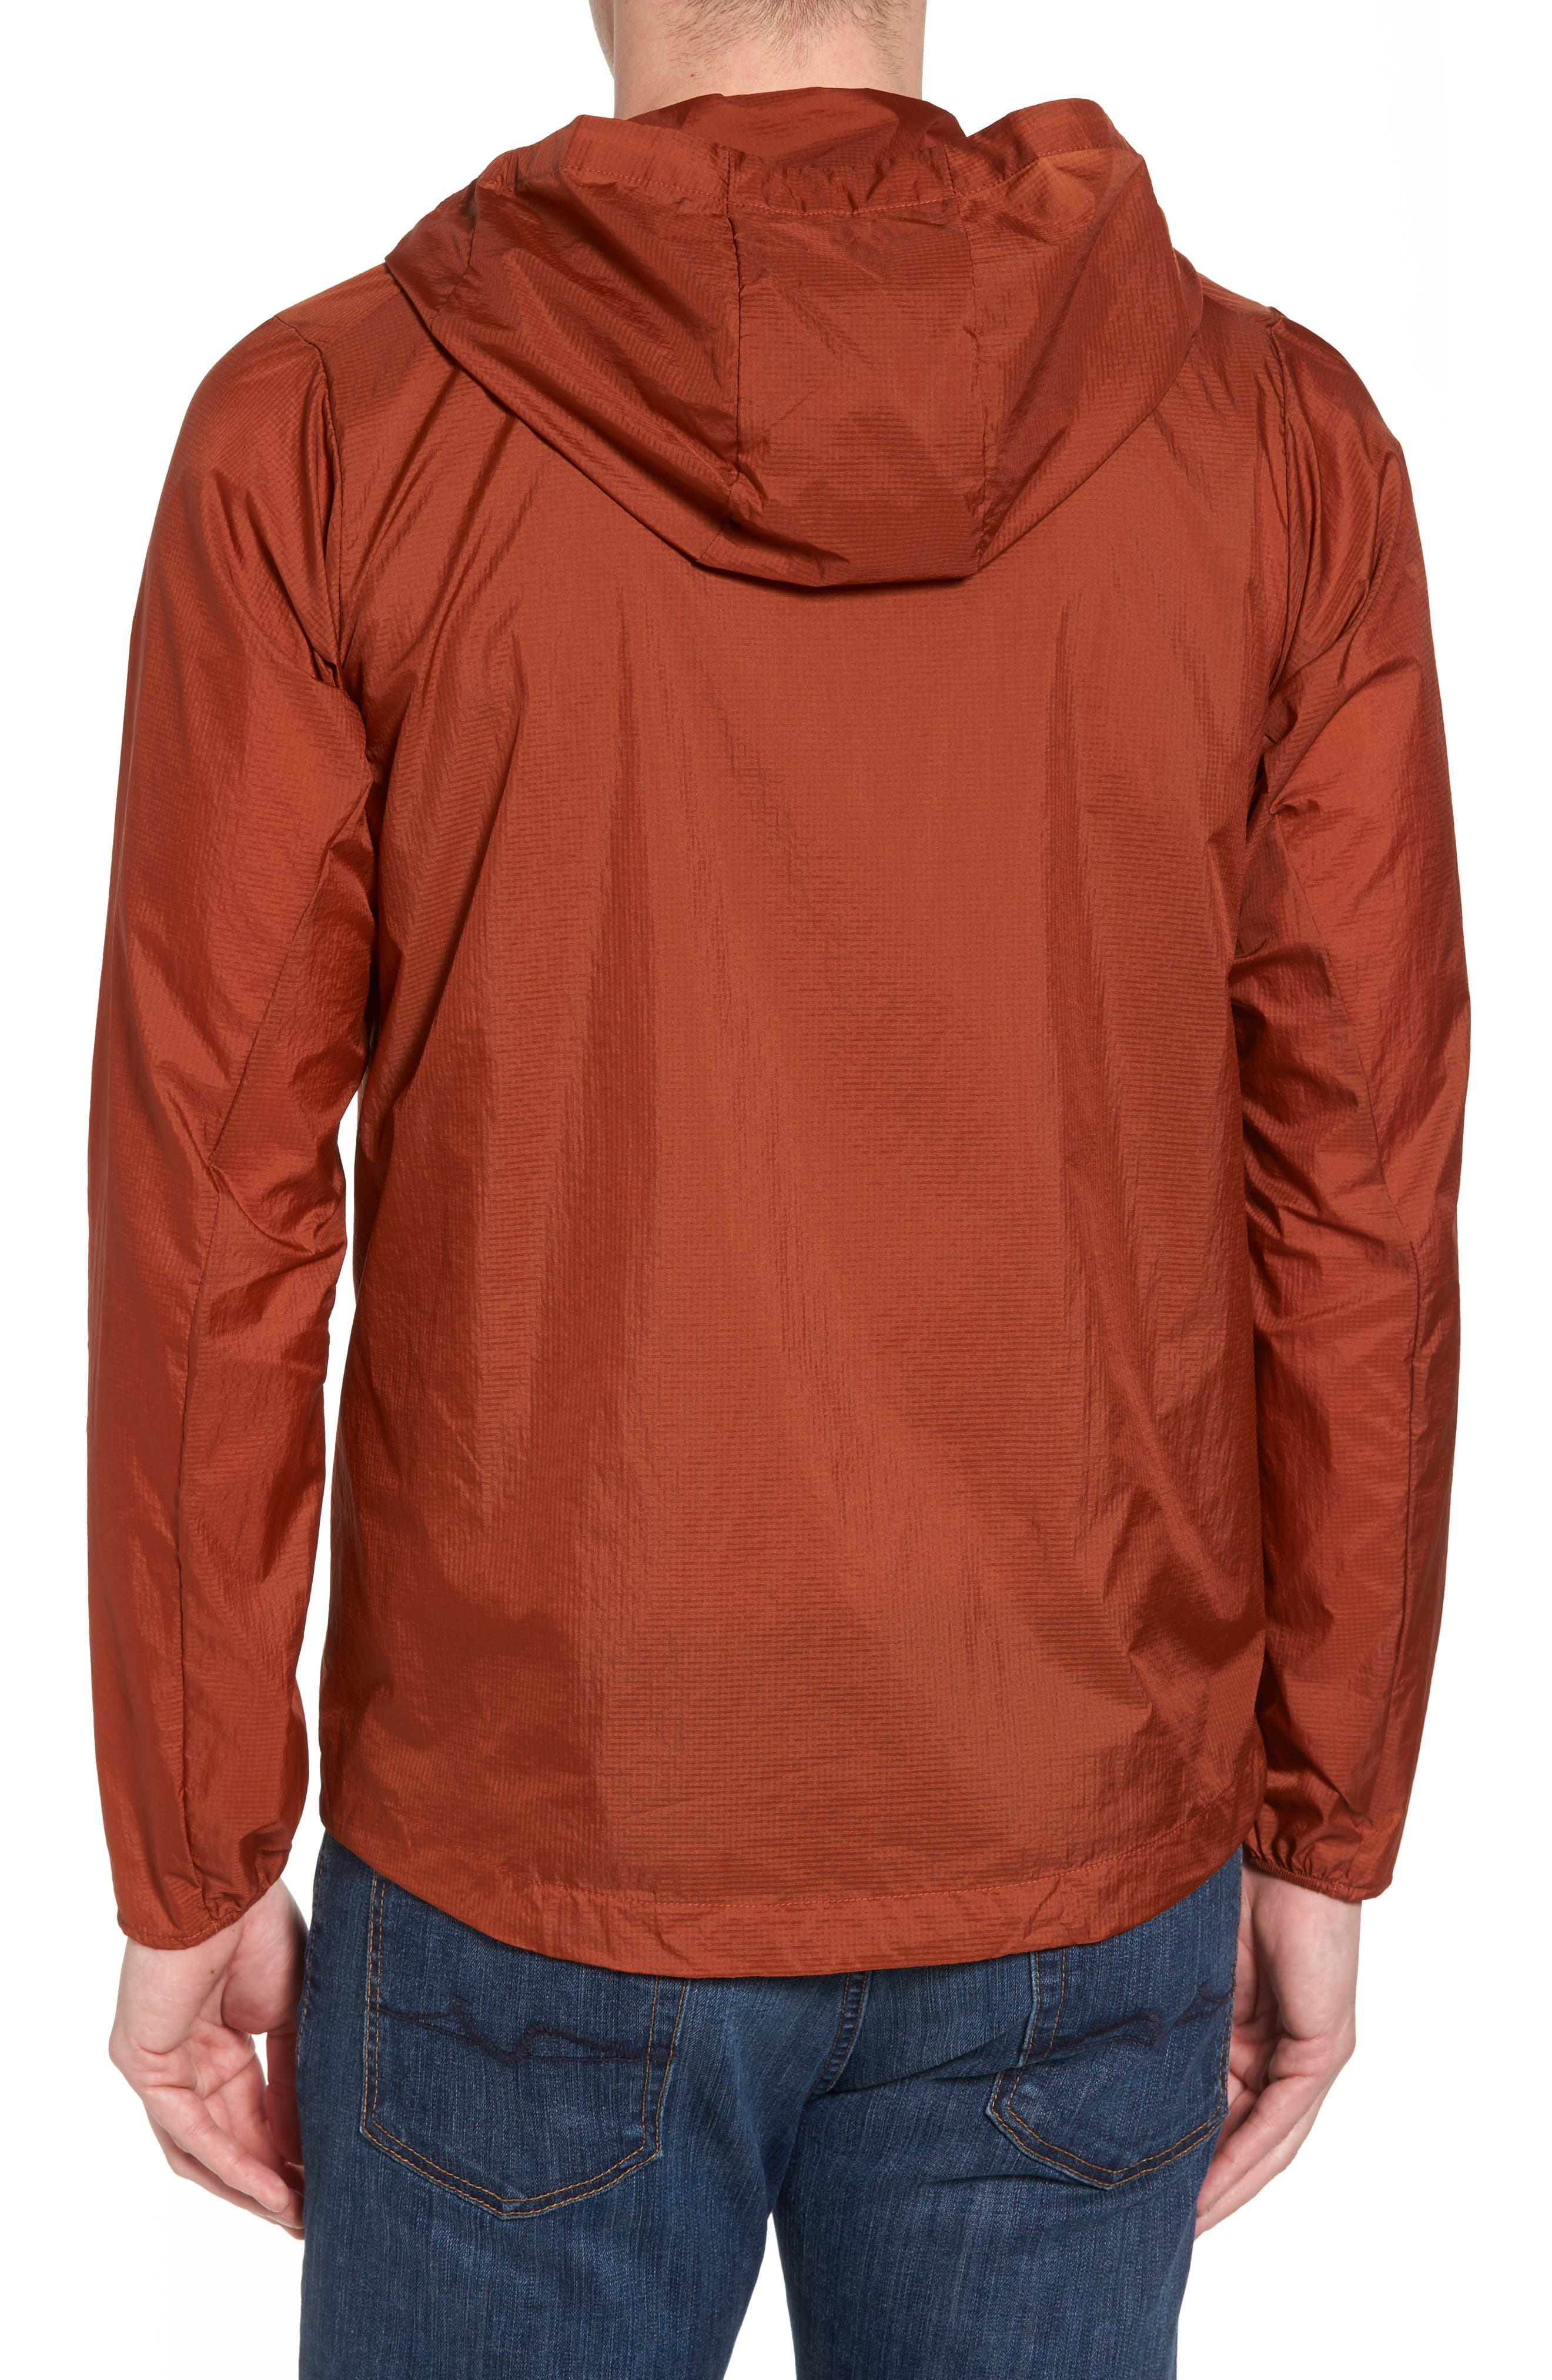 'Houdini' Slim Fit Water Repellent Hooded Jacket,                             Alternate thumbnail 2, color,                             Copper Ore